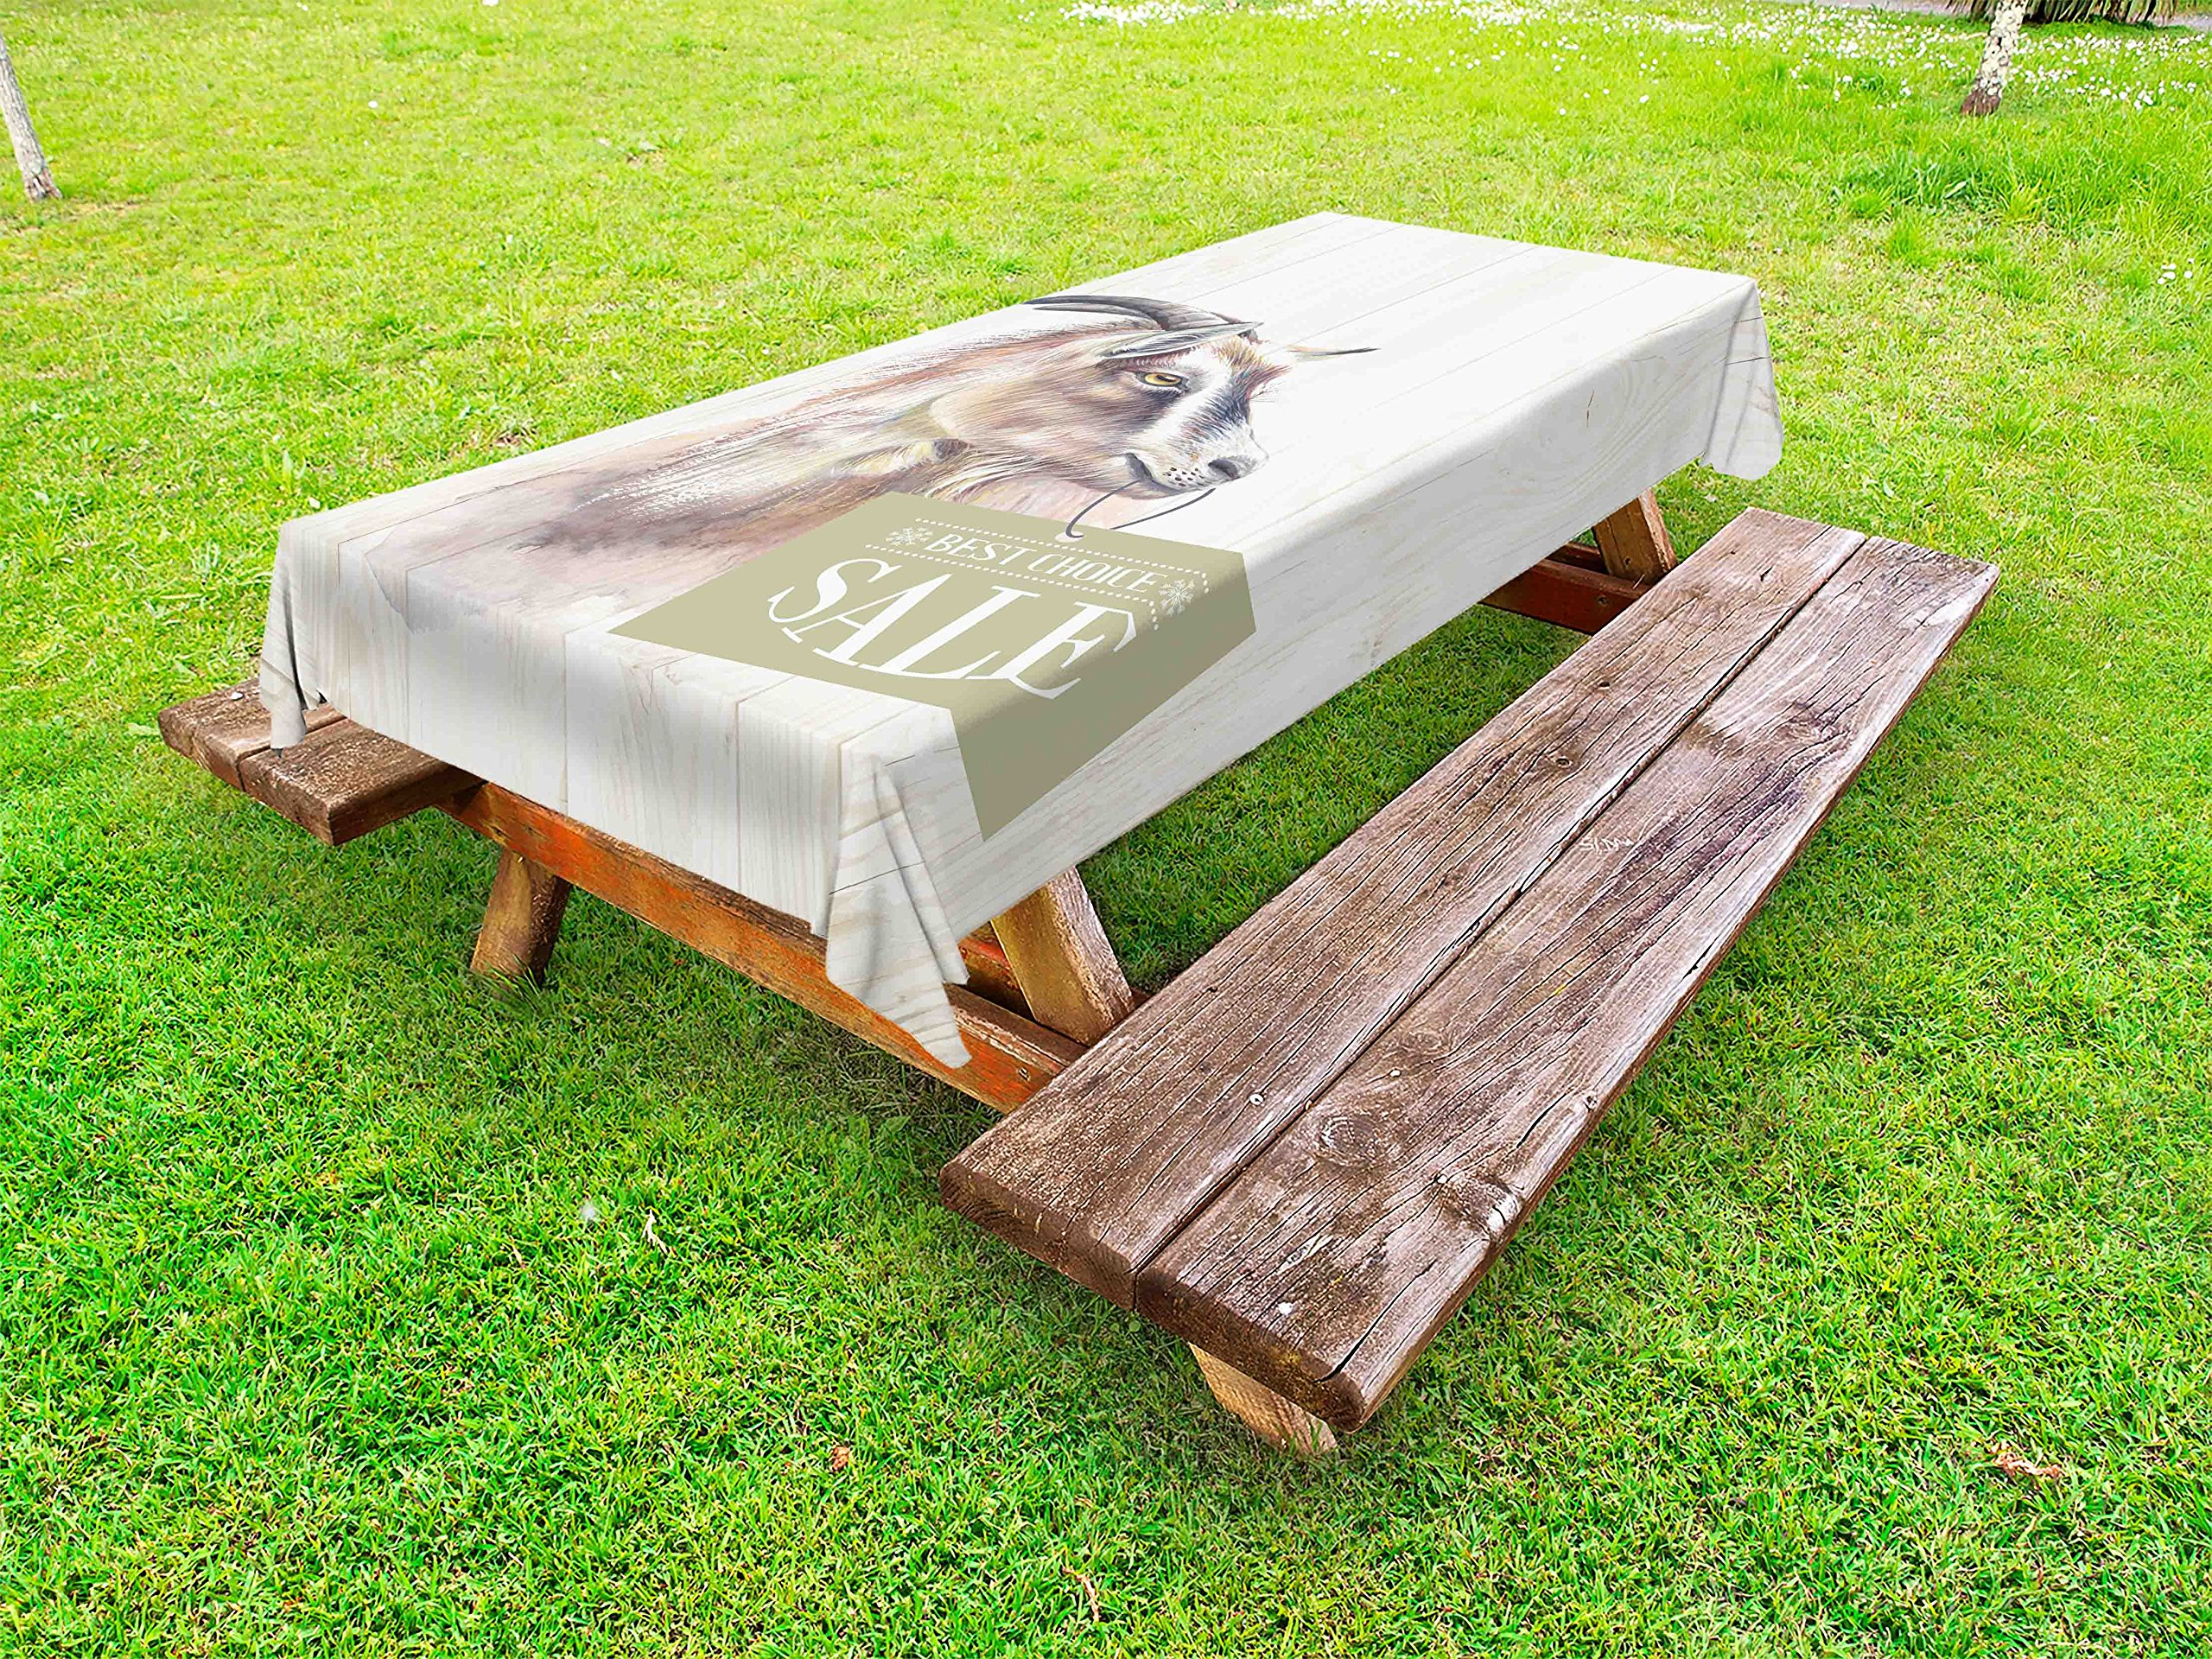 Lunarable Goat Outdoor Tablecloth, Farm Animal Portrait on Wooden Board Backdrop Domesticated Furry Mammal Vintage, Decorative Washable Picnic Table Cloth, 58 X 104 inches, Ivory Brown Black